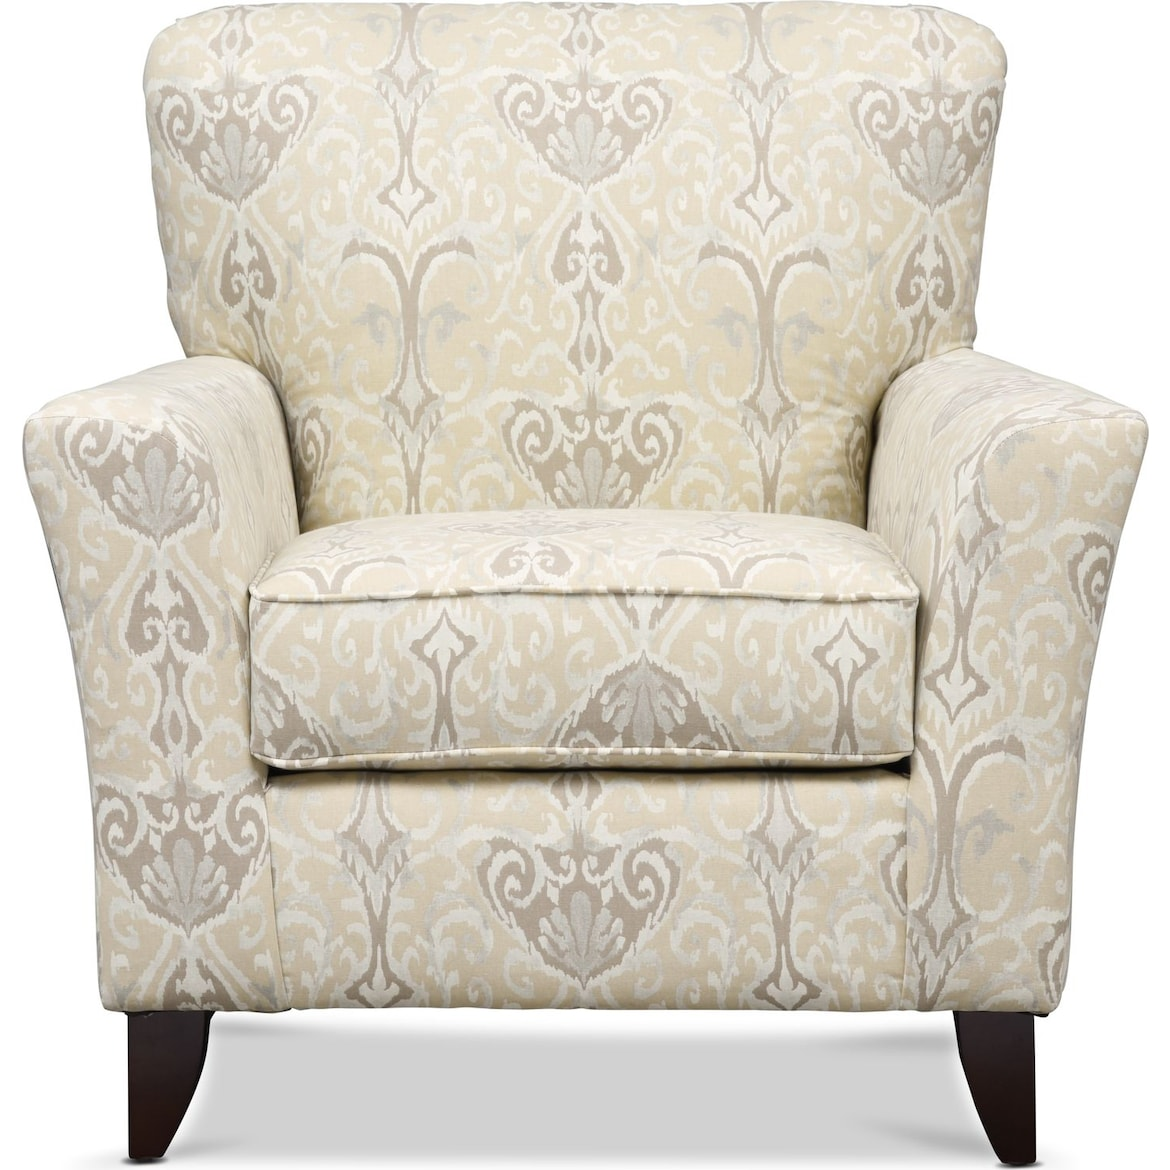 Carla Gray Accent Chair I Value City Furniture: Carla Sofa, Loveseat, And Accent Chair Set